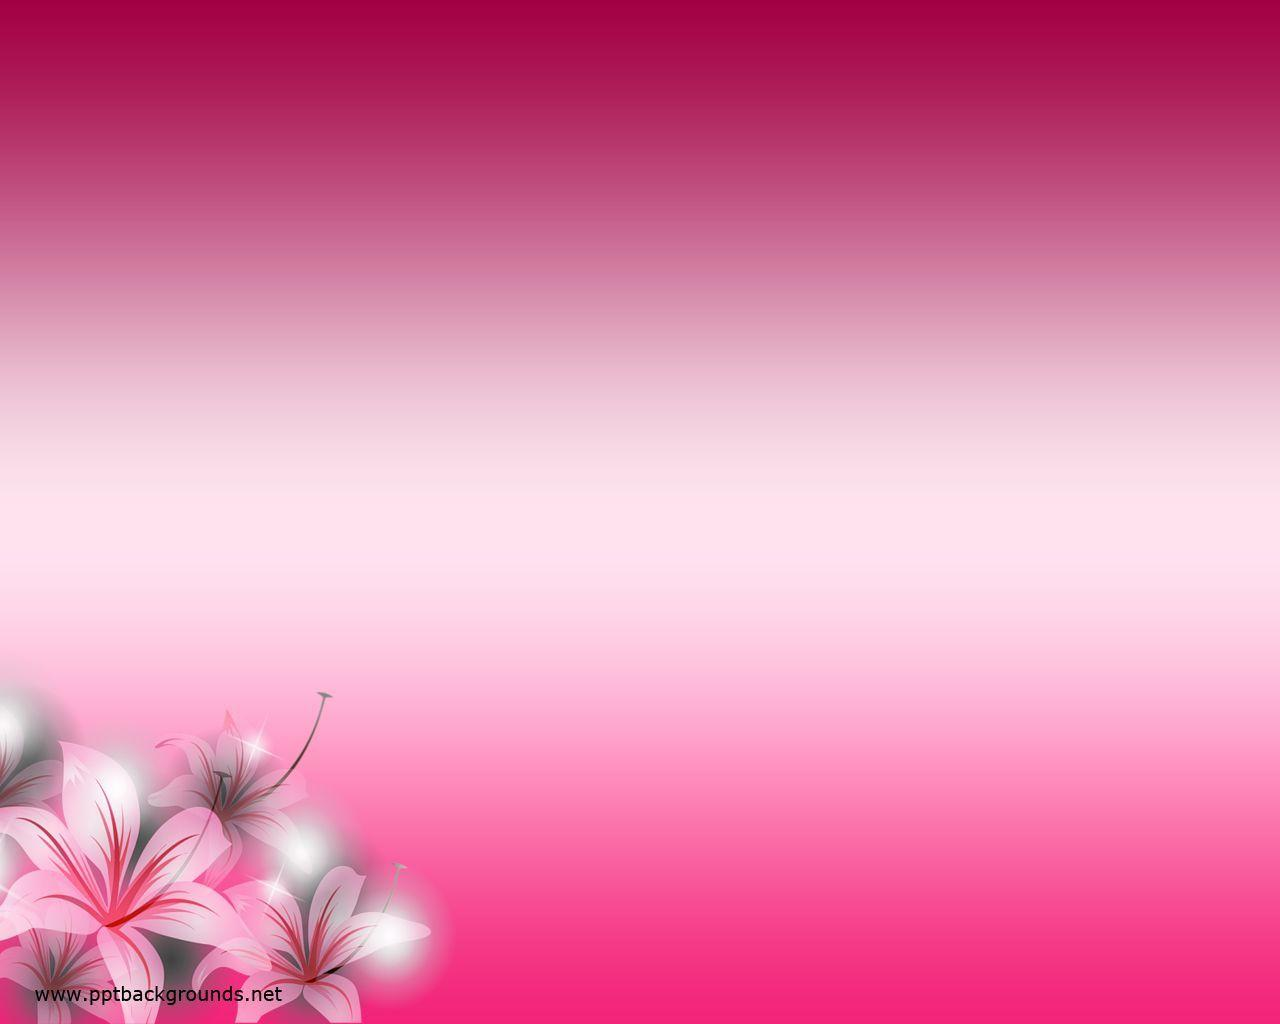 backgrounds style powerpoint 2016 color pink wallpaper cave